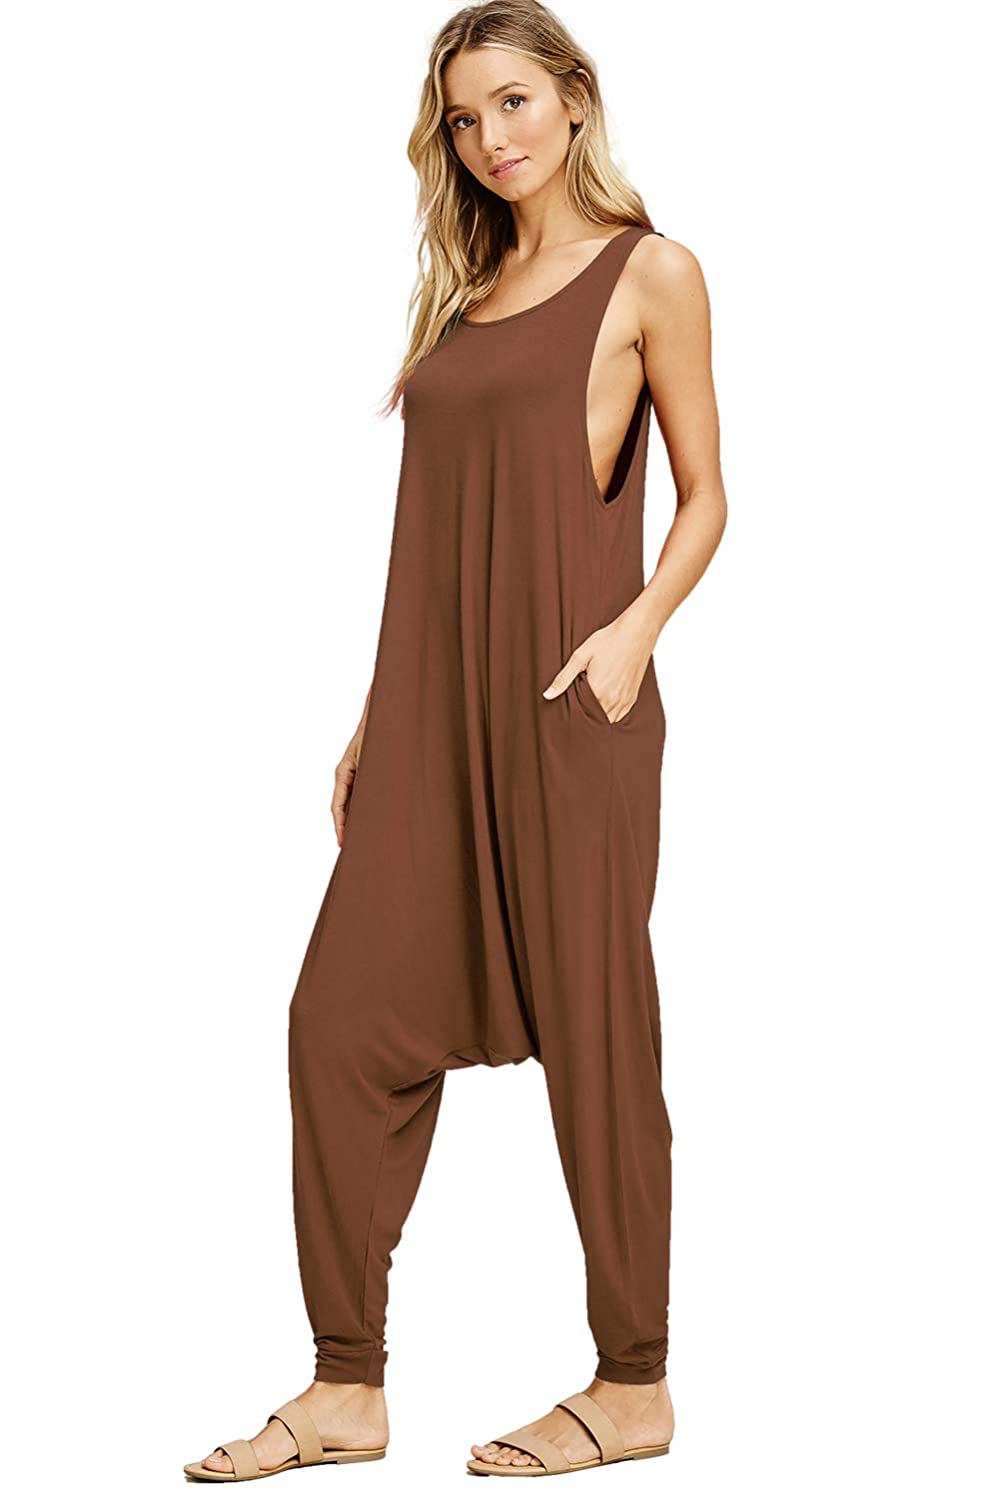 3cced468b95 Amazon.com  Annabelle Women s Solid Harem Pant Sleeveless Pocket Harem Pant  Jumpsuit  Clothing